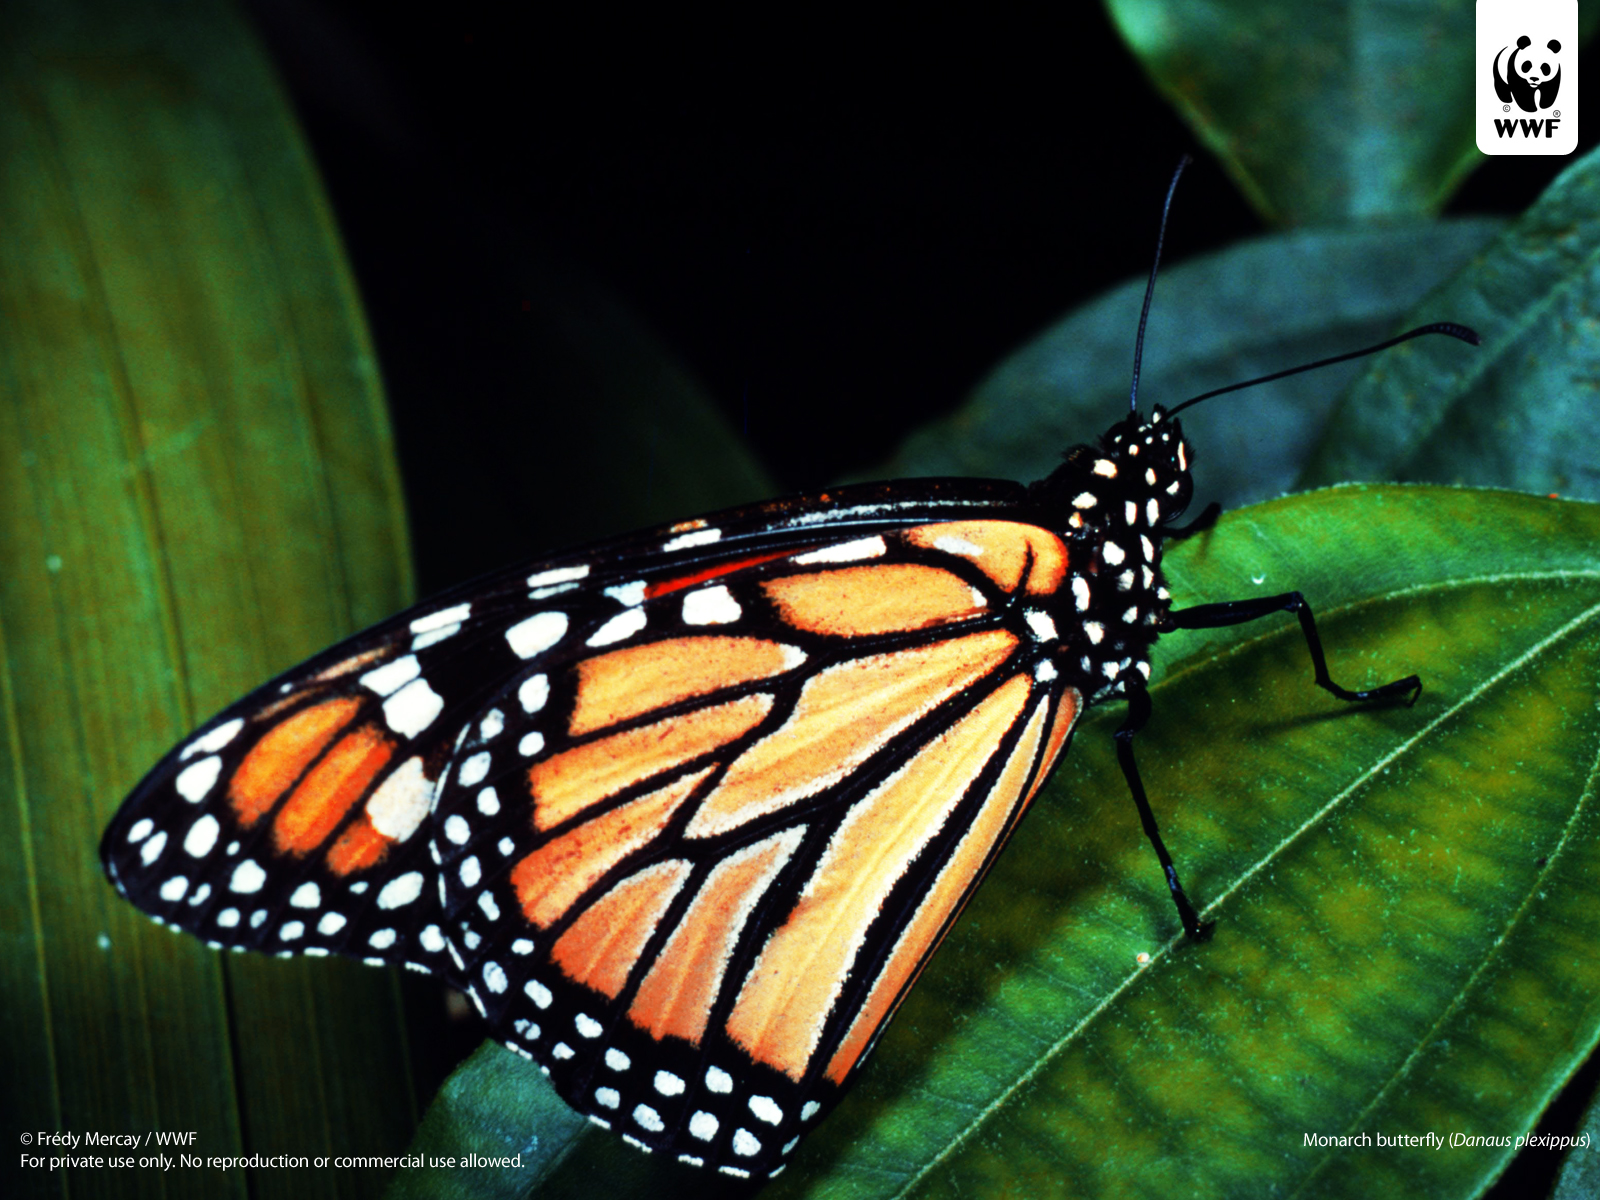 Monarch butterfly wallpaper | Amazing Wallpapers Pictures Of Butterflies